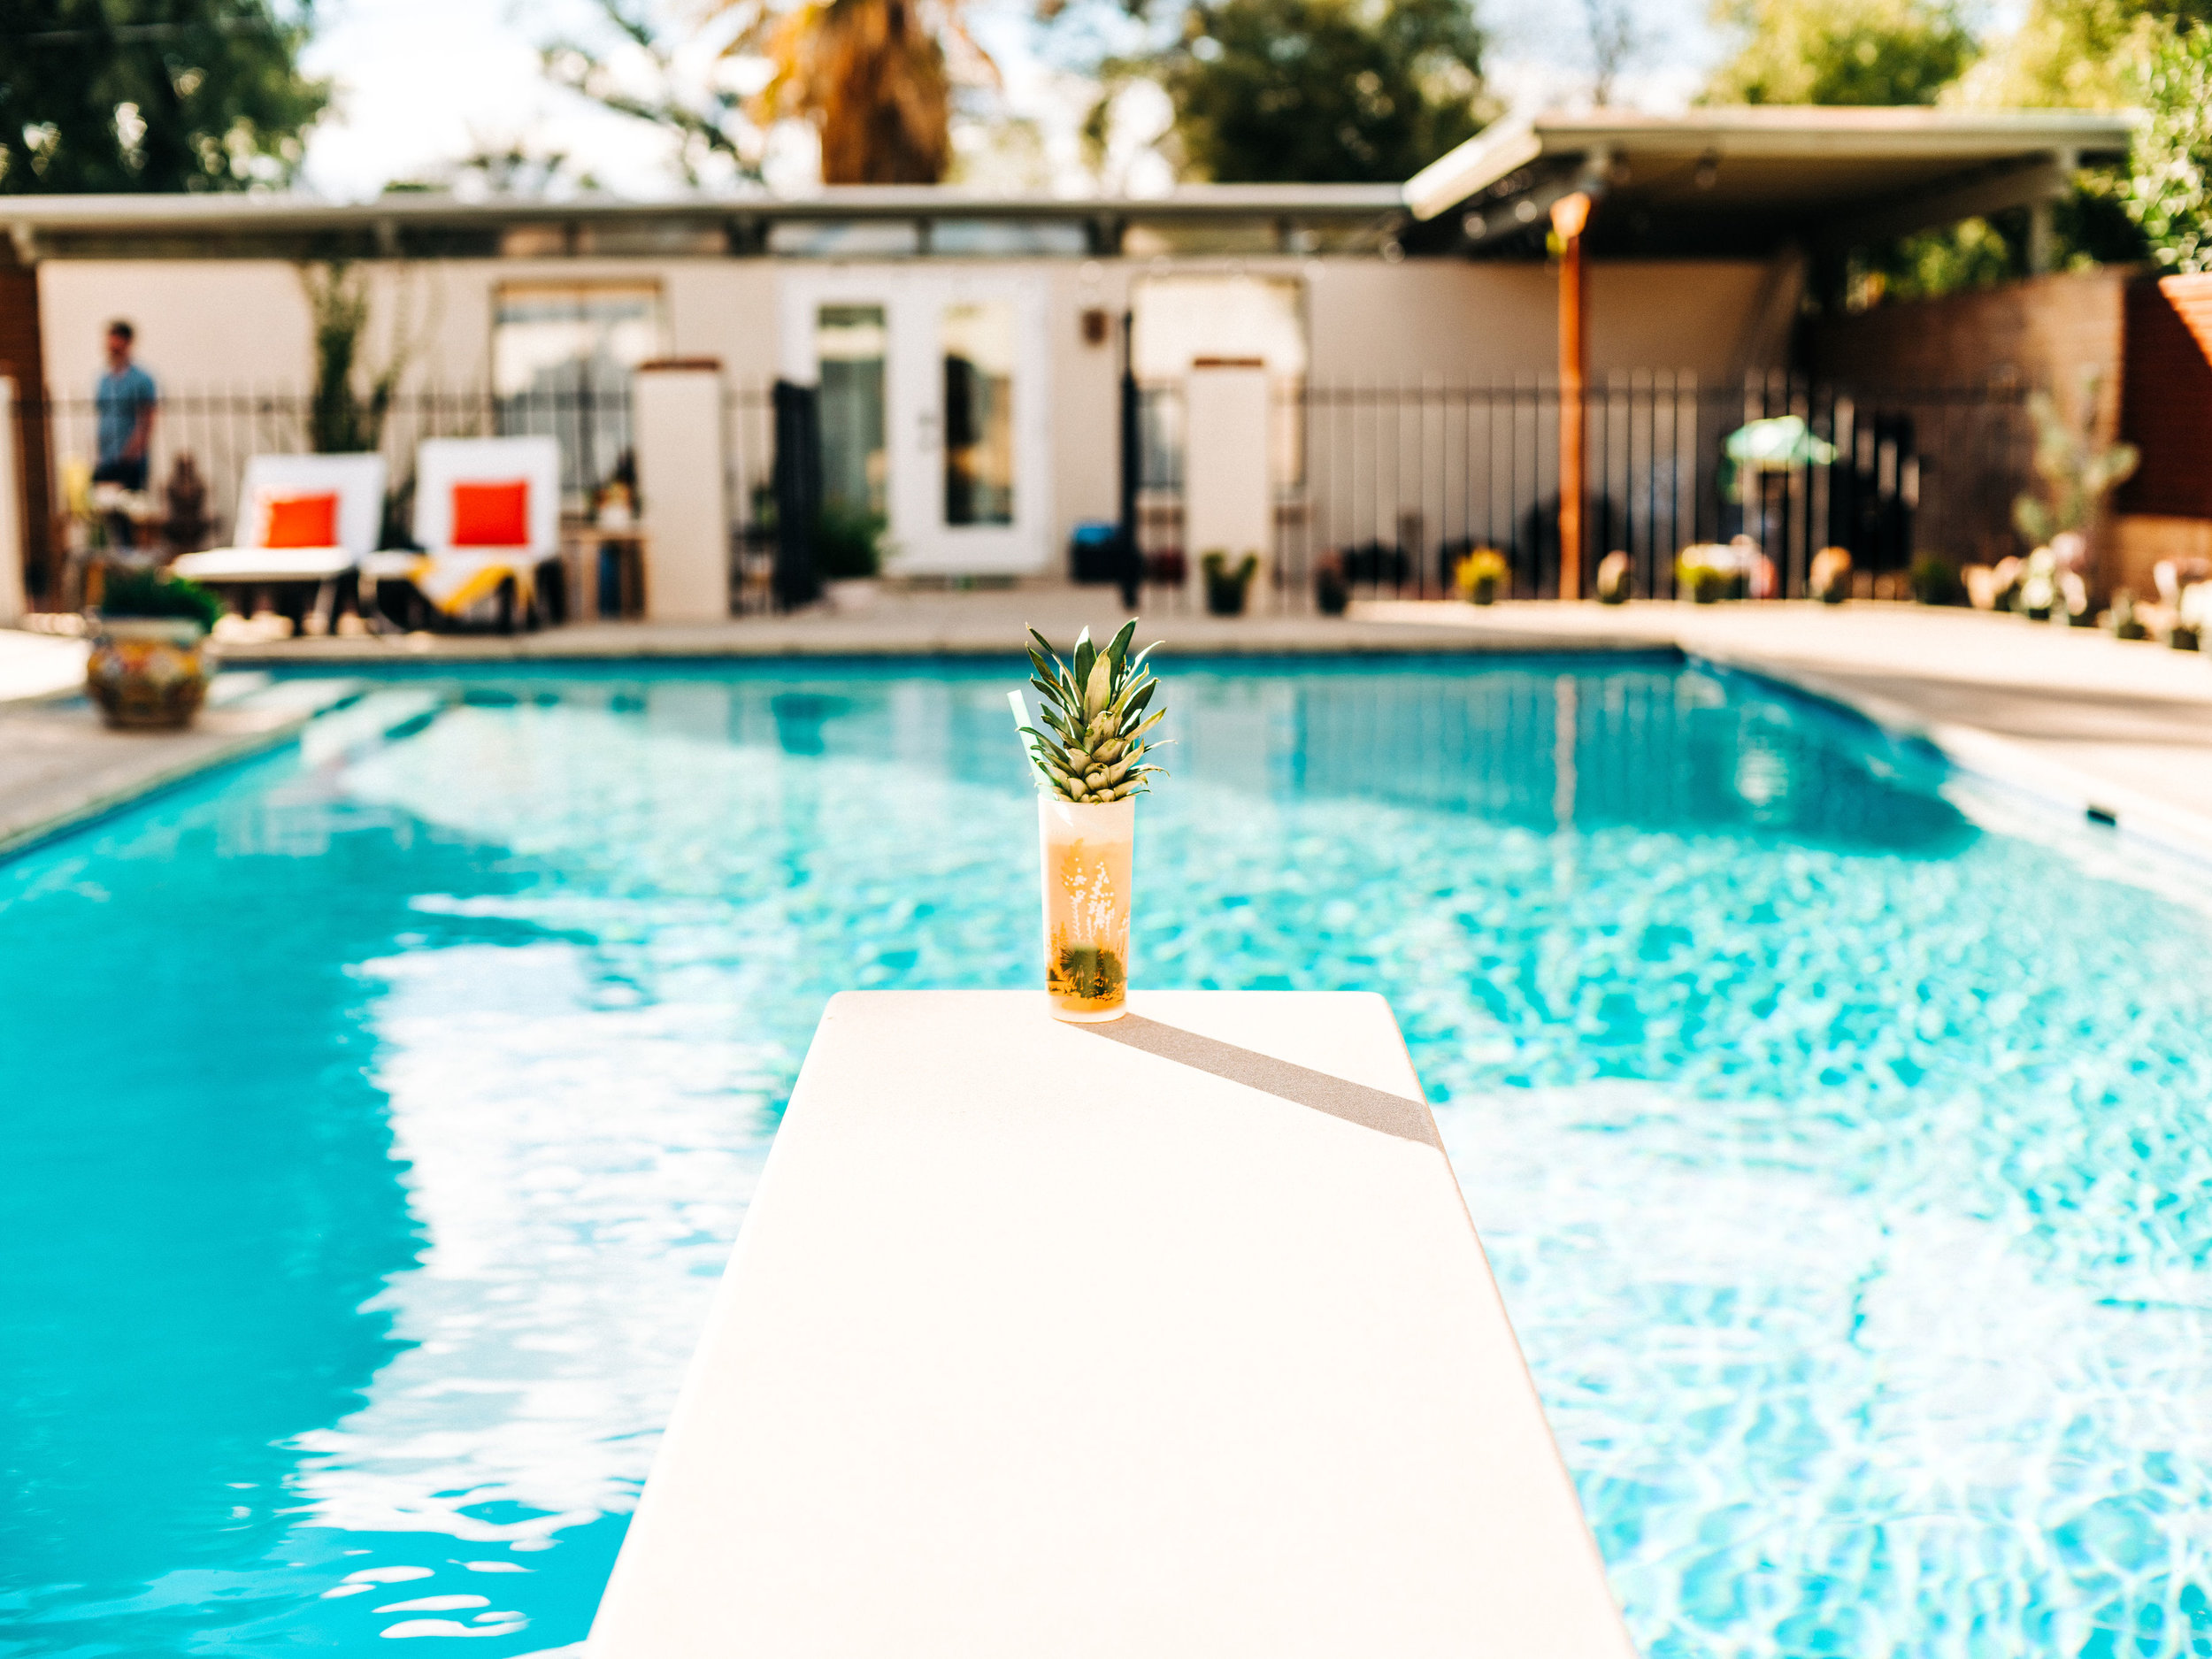 Andy-Shepard-Photography-Tucson-Pool-Party-39.jpg